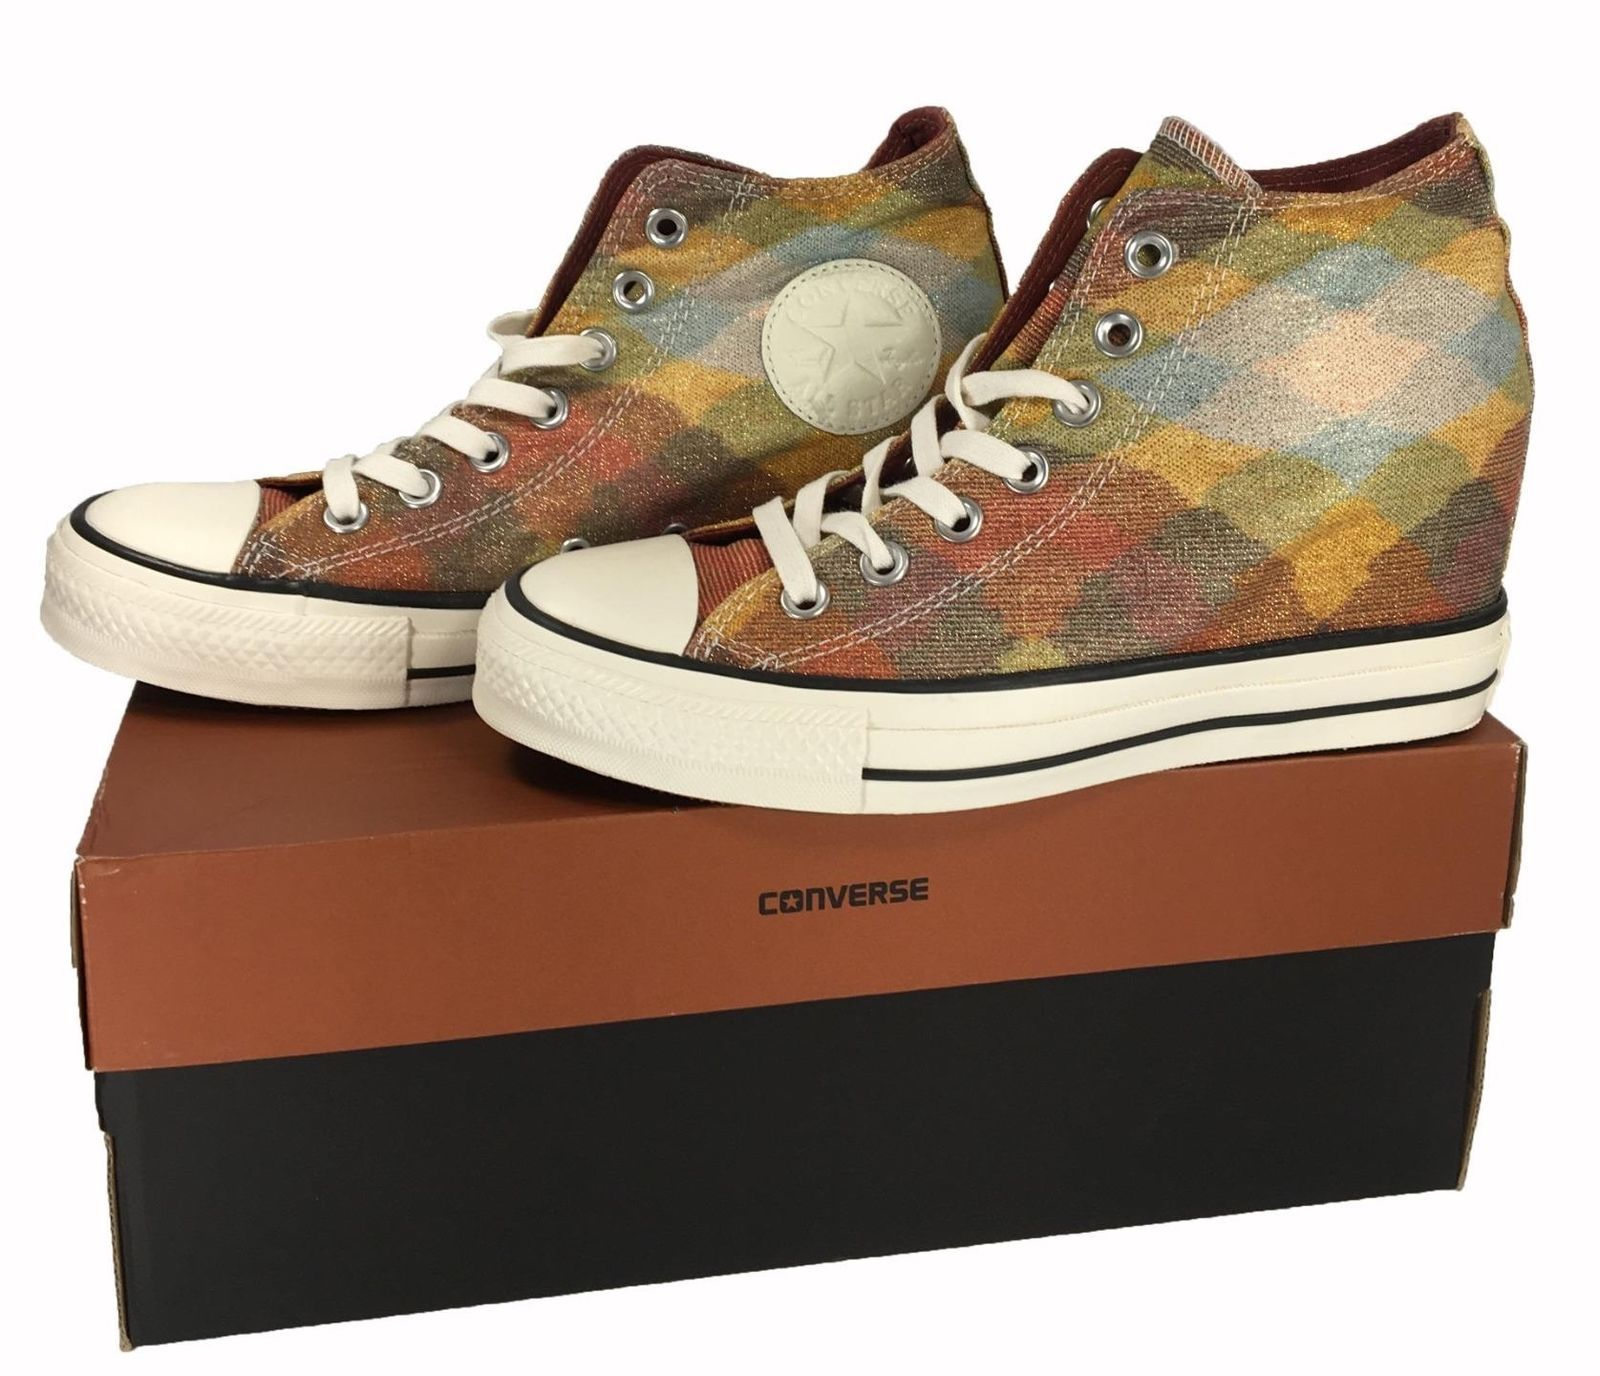 6cc0a166df7e Converse by Missoni Chuck Taylor All Star and 50 similar items. S l1600